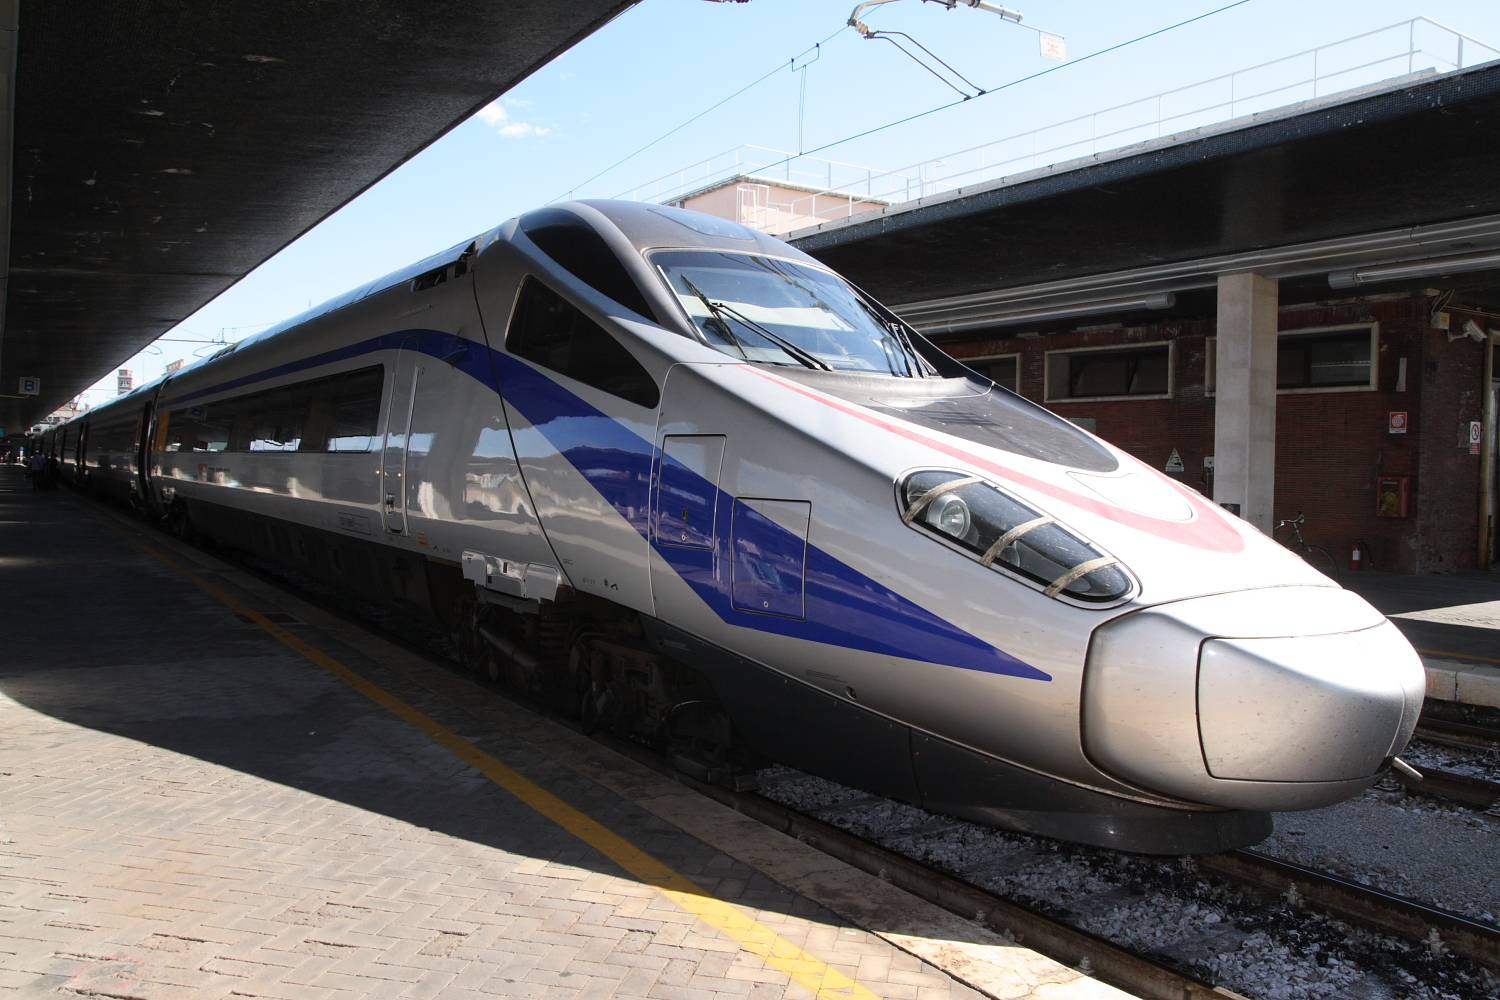 Alstom ETR 610 high-speed Pendolino